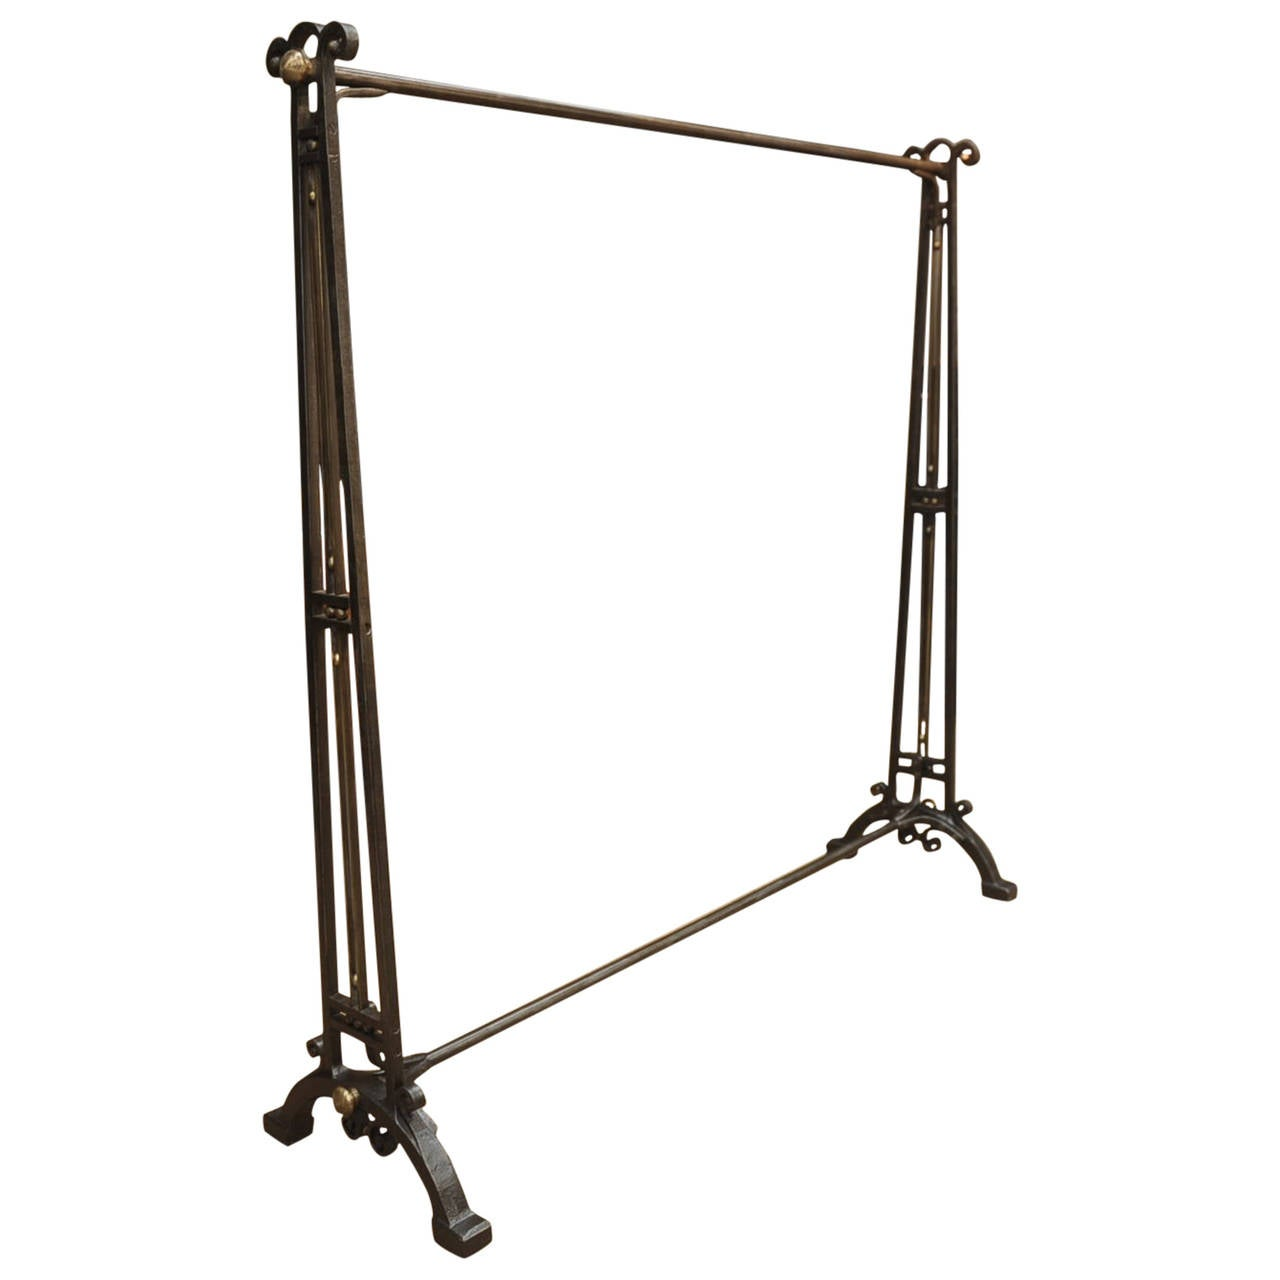 French Art Deco Wrought Iron And Brass Coat Rack Circa